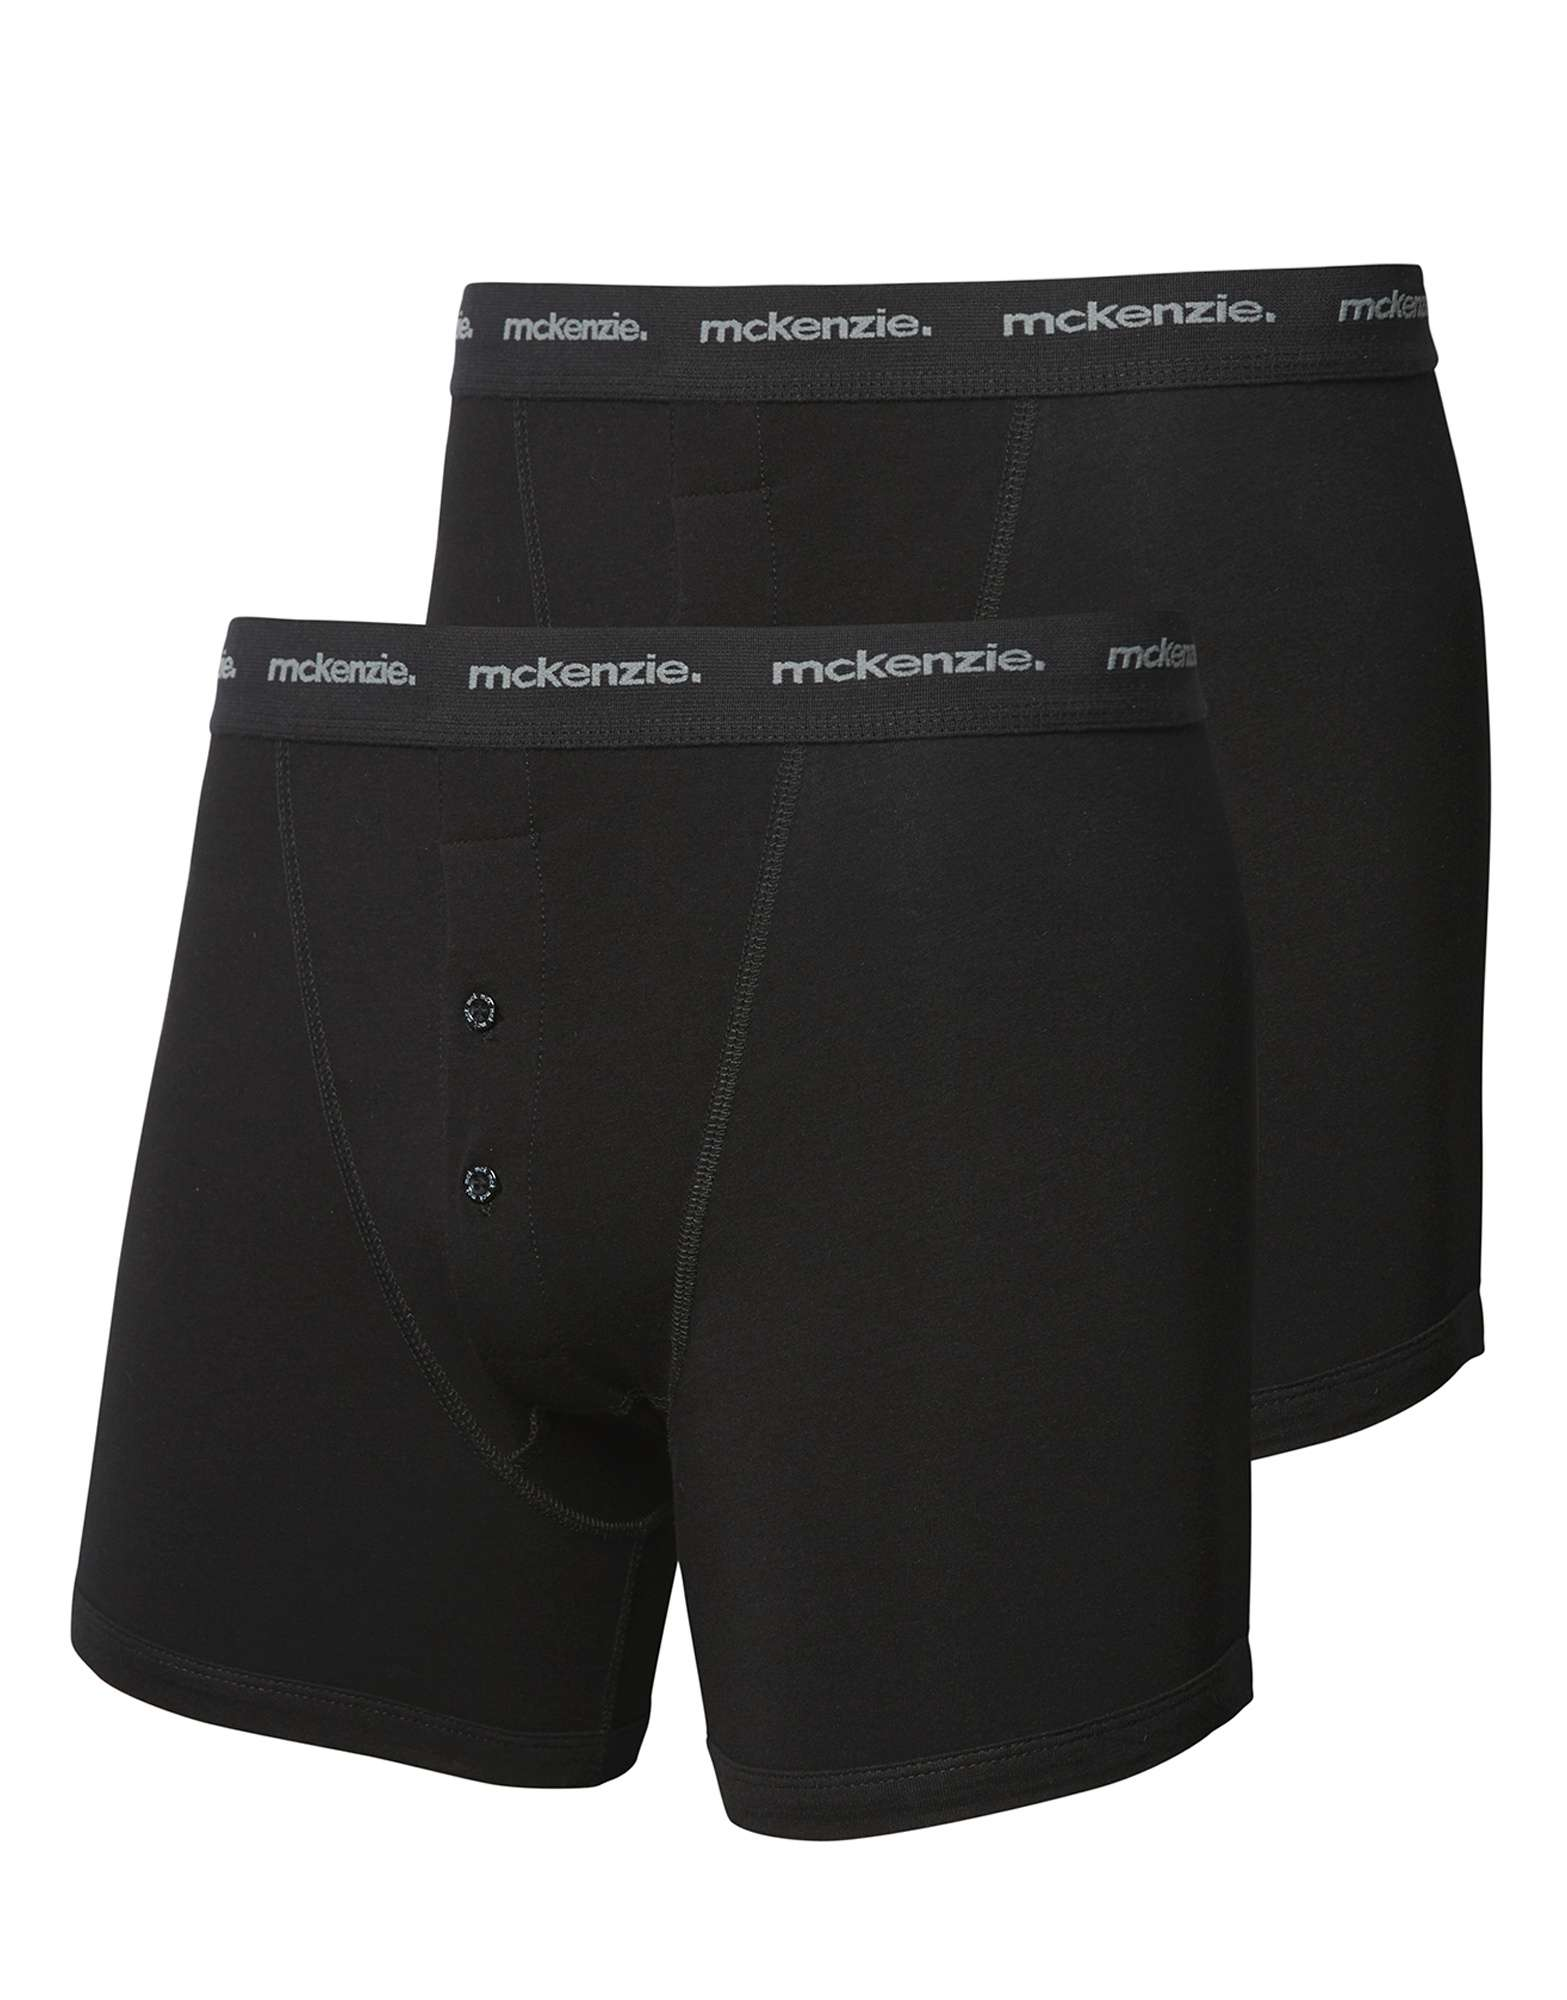 McKenzie 2 Pack Cotton Boxers